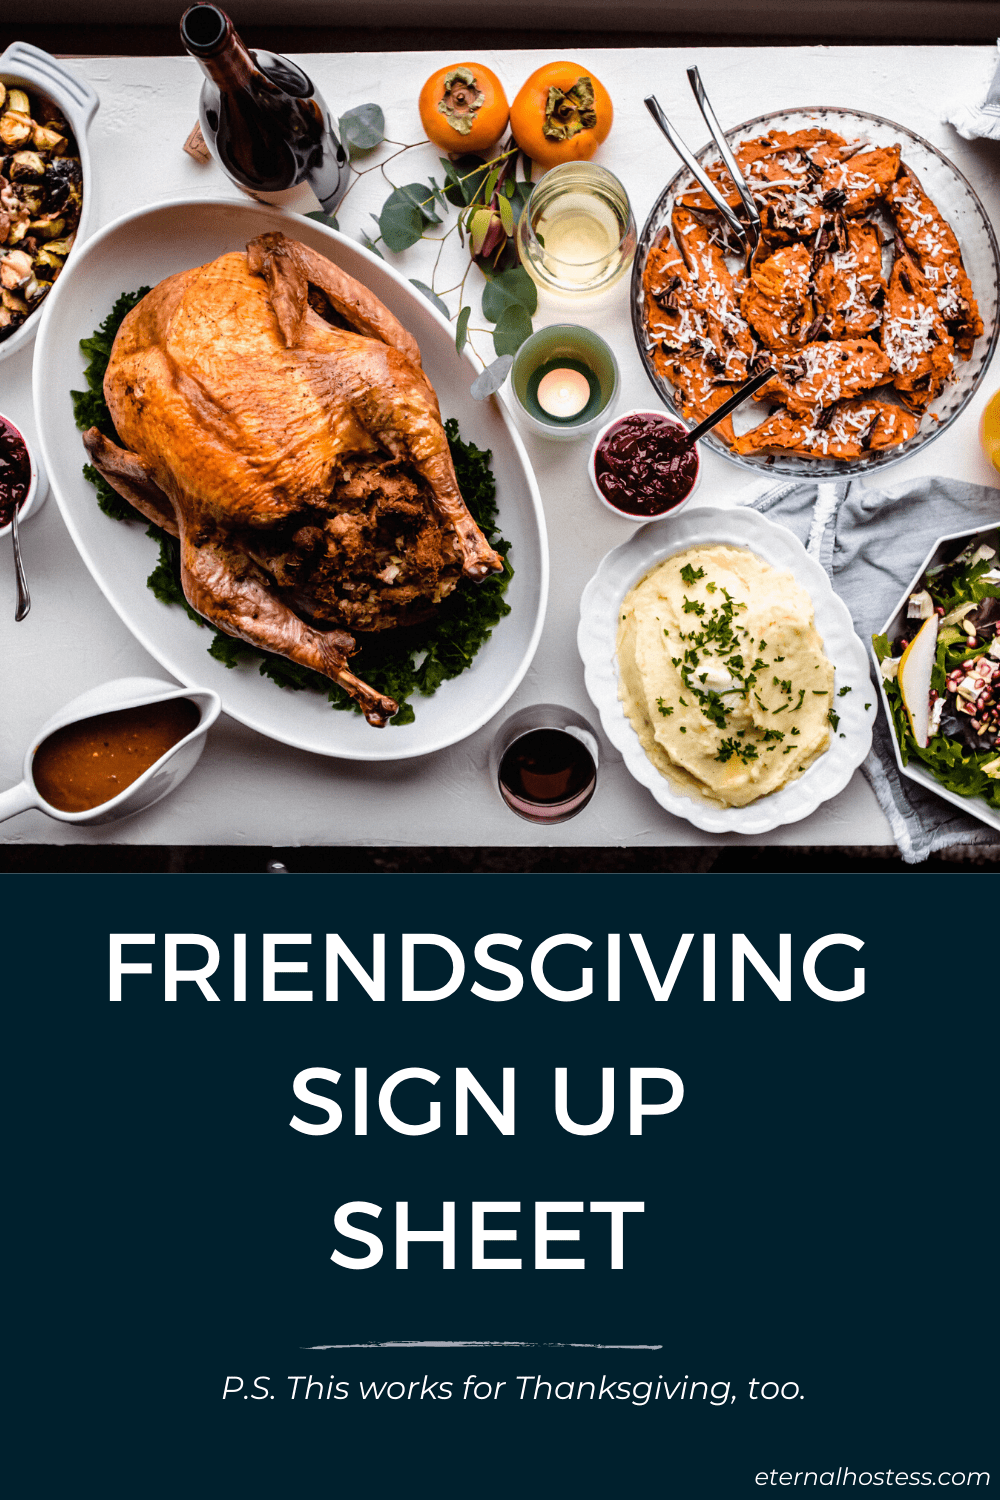 Friendsgiving Sign Up Sheet. An image at the top features a thanksgiving spread with a full turkey, mashed potatoes, and sweet potatoes amongst a fully set table.